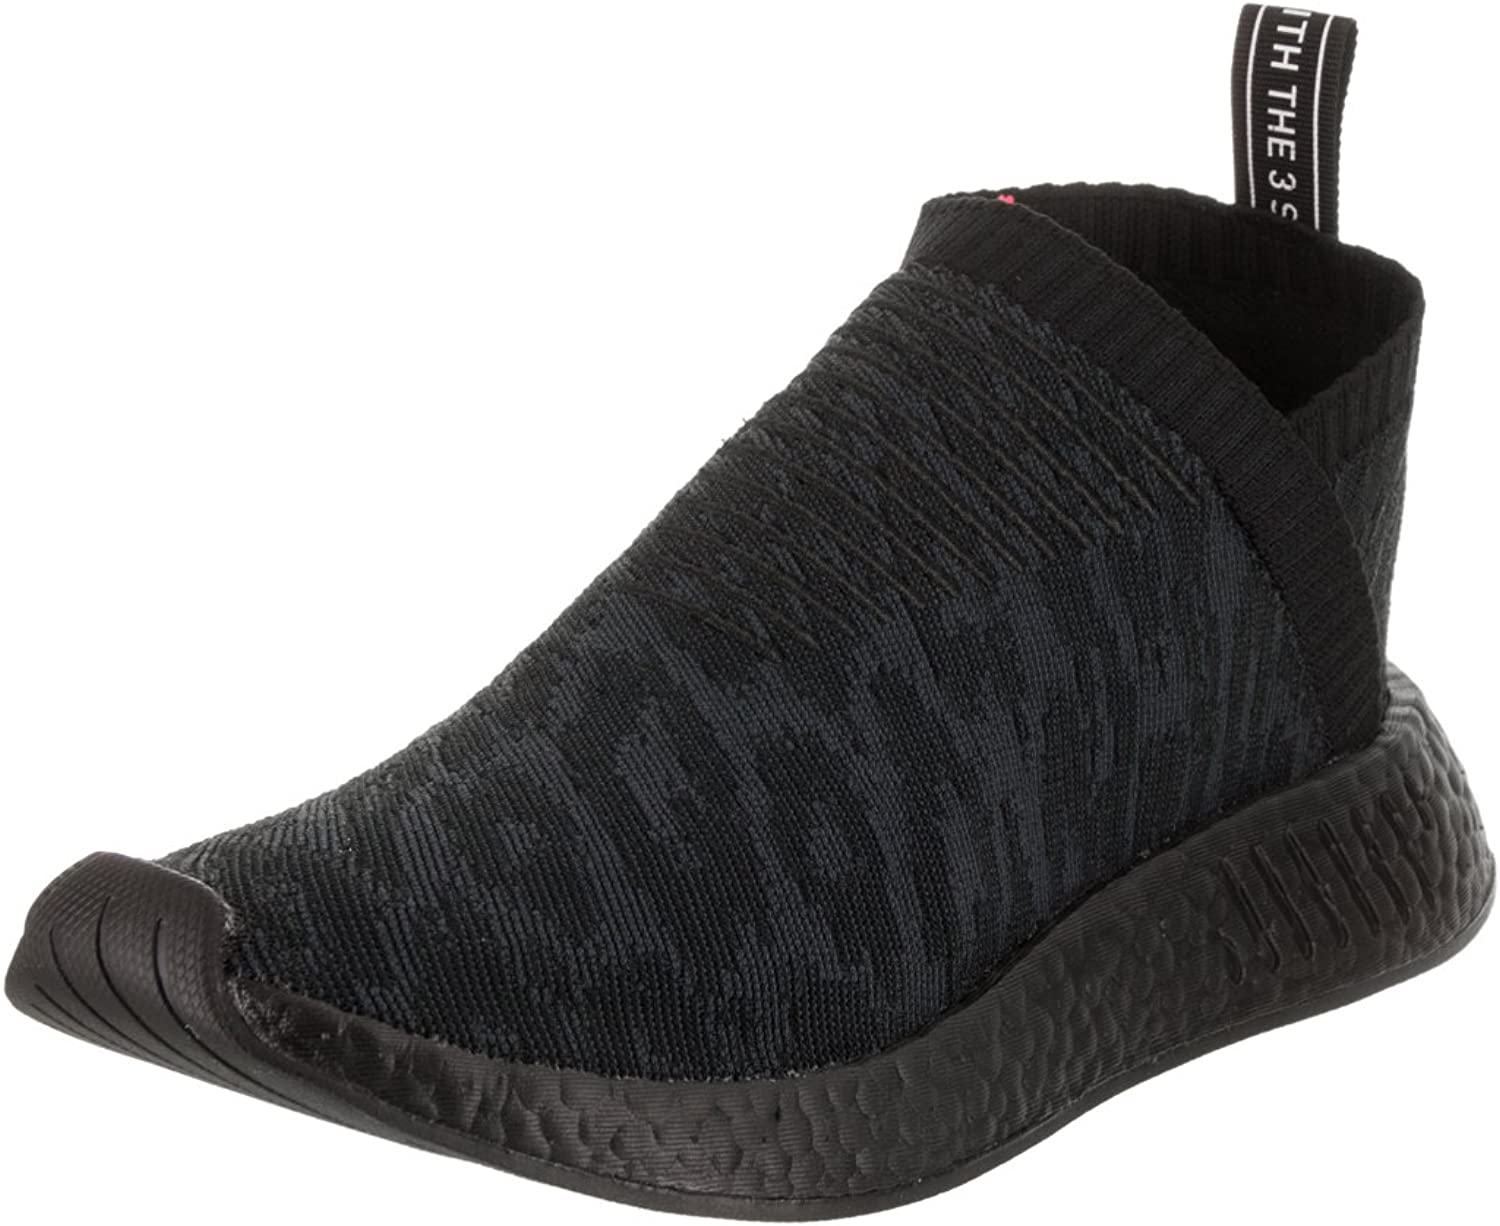 Adidas Men's NMD_CS2 PK Originals Running shoes